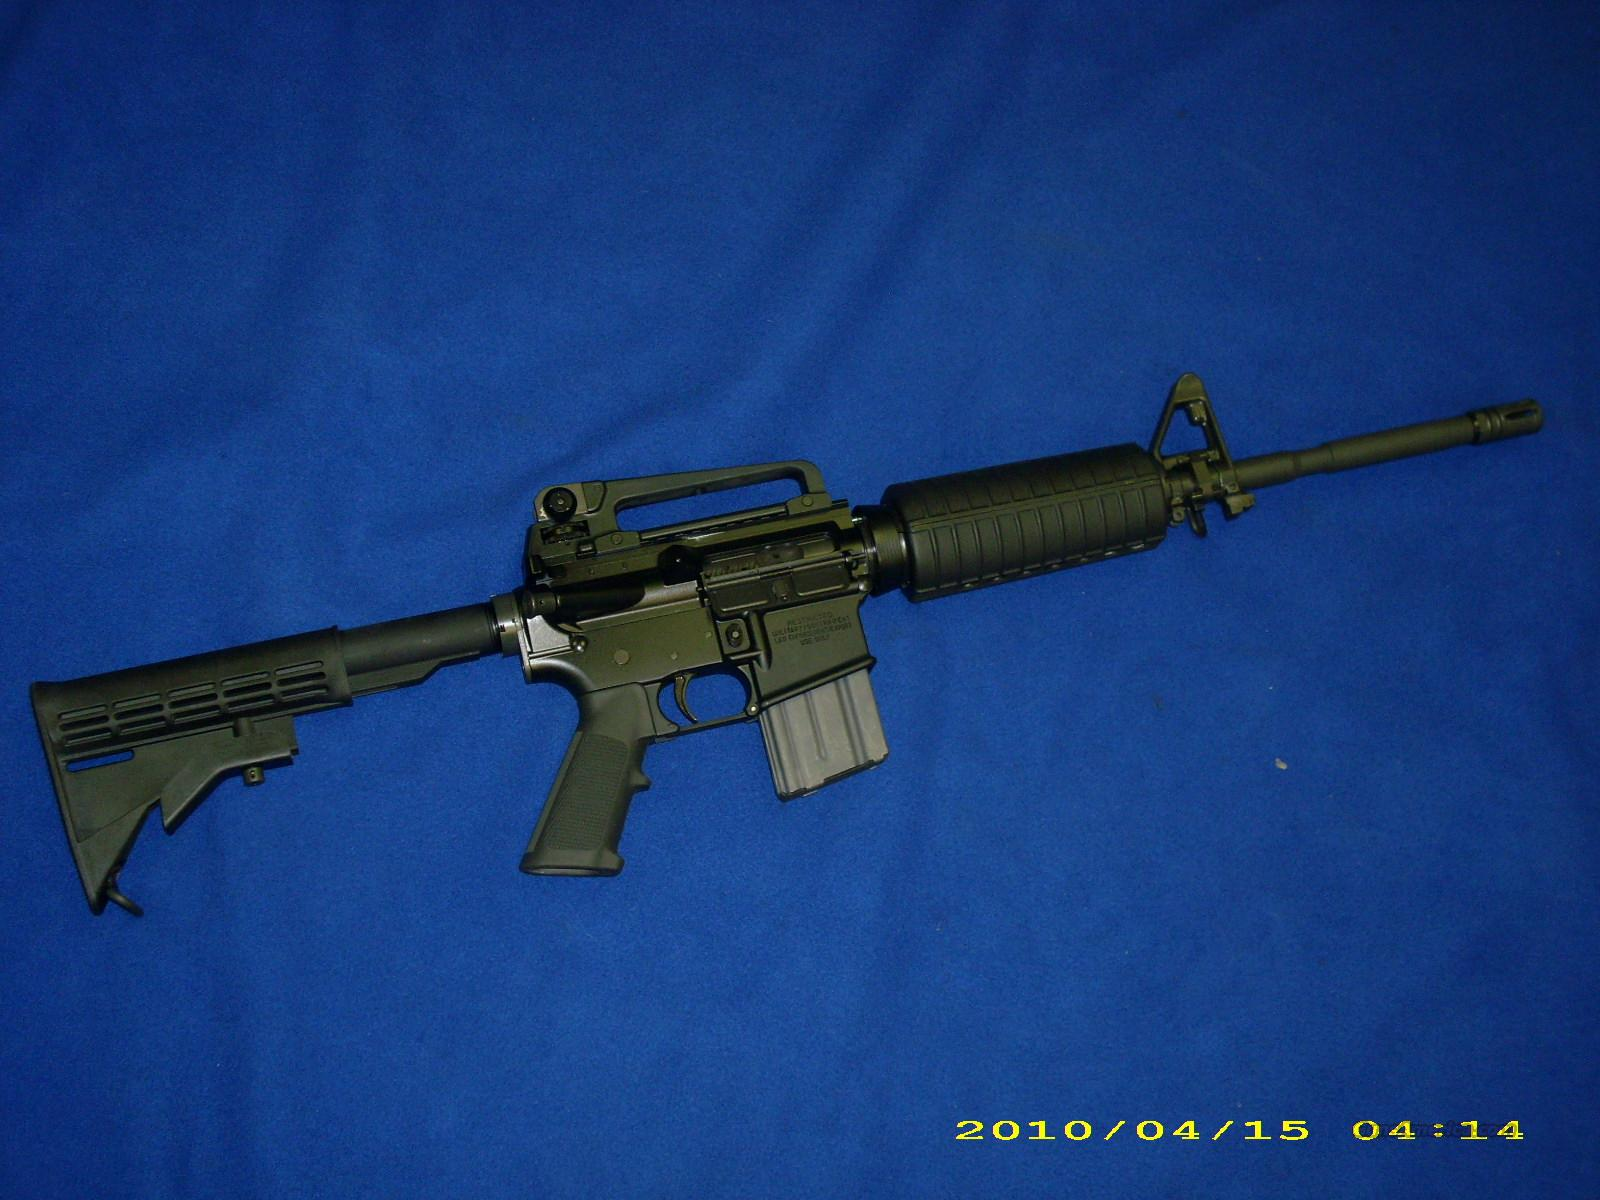 Colt AR-15 LE, 223 Cal, Law Enforcement  Guns > Rifles > Colt Military/Tactical Rifles